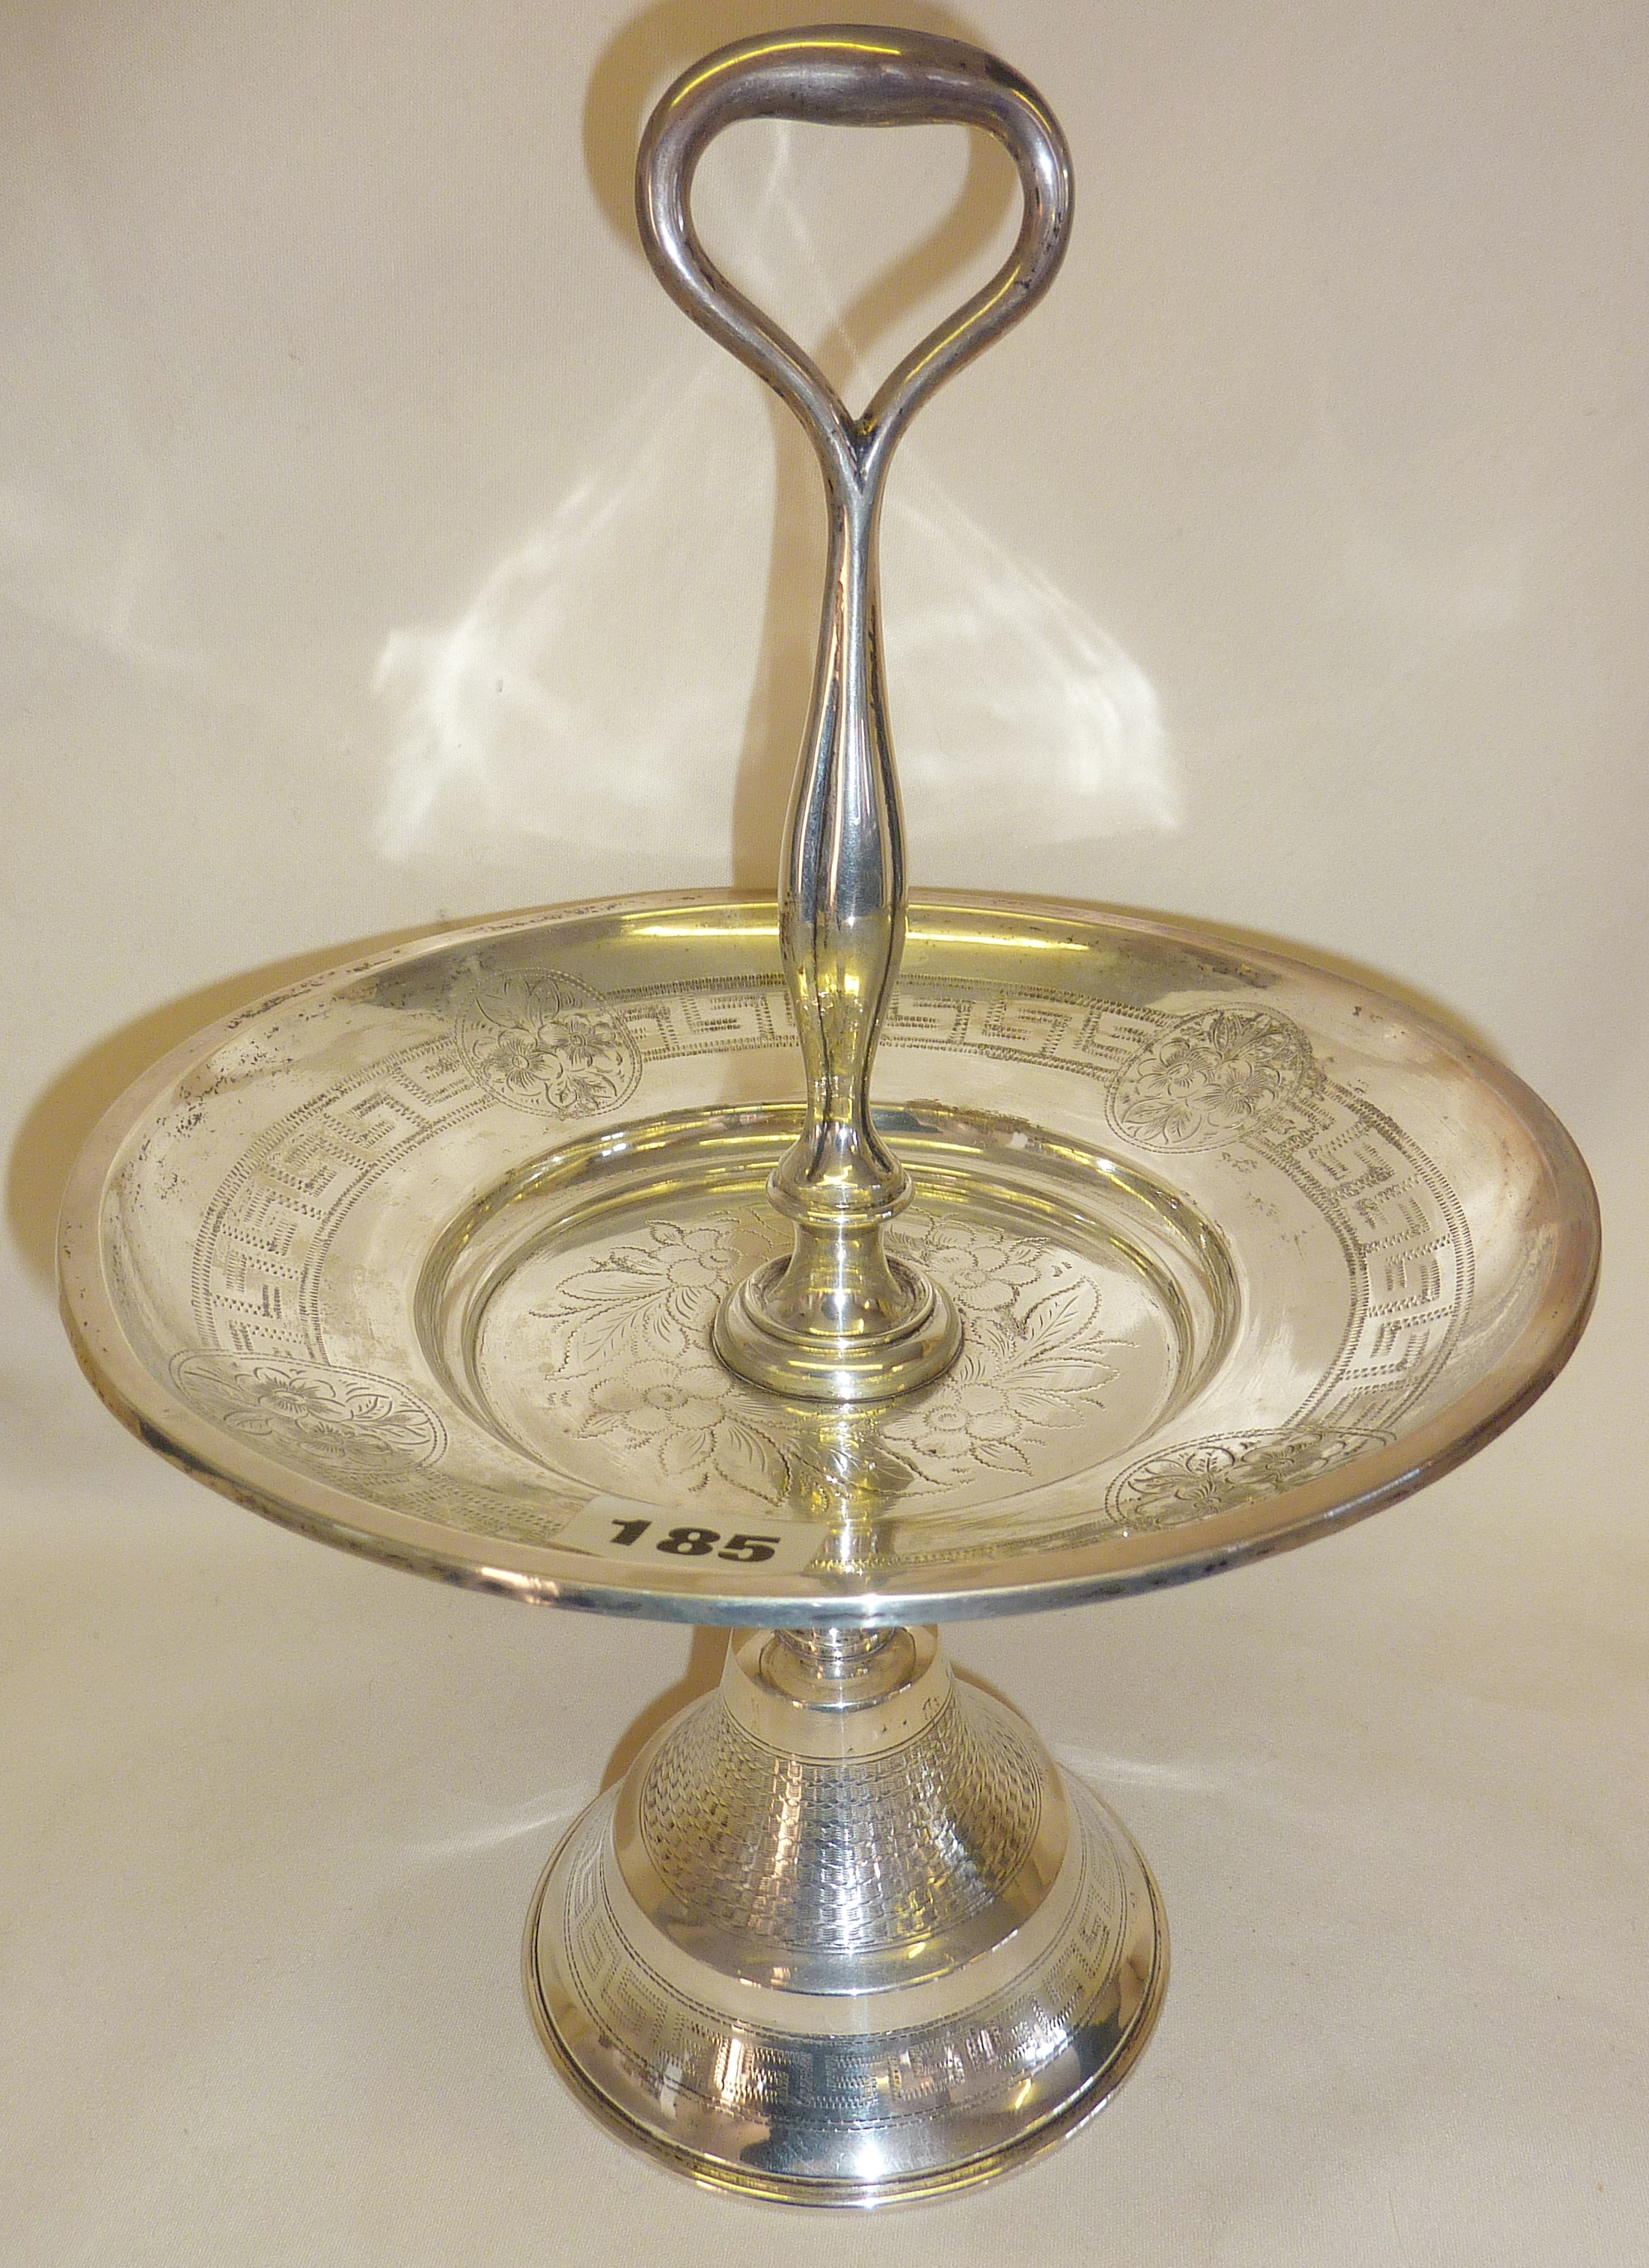 Continental engraved silver tazza, approx 13oz.